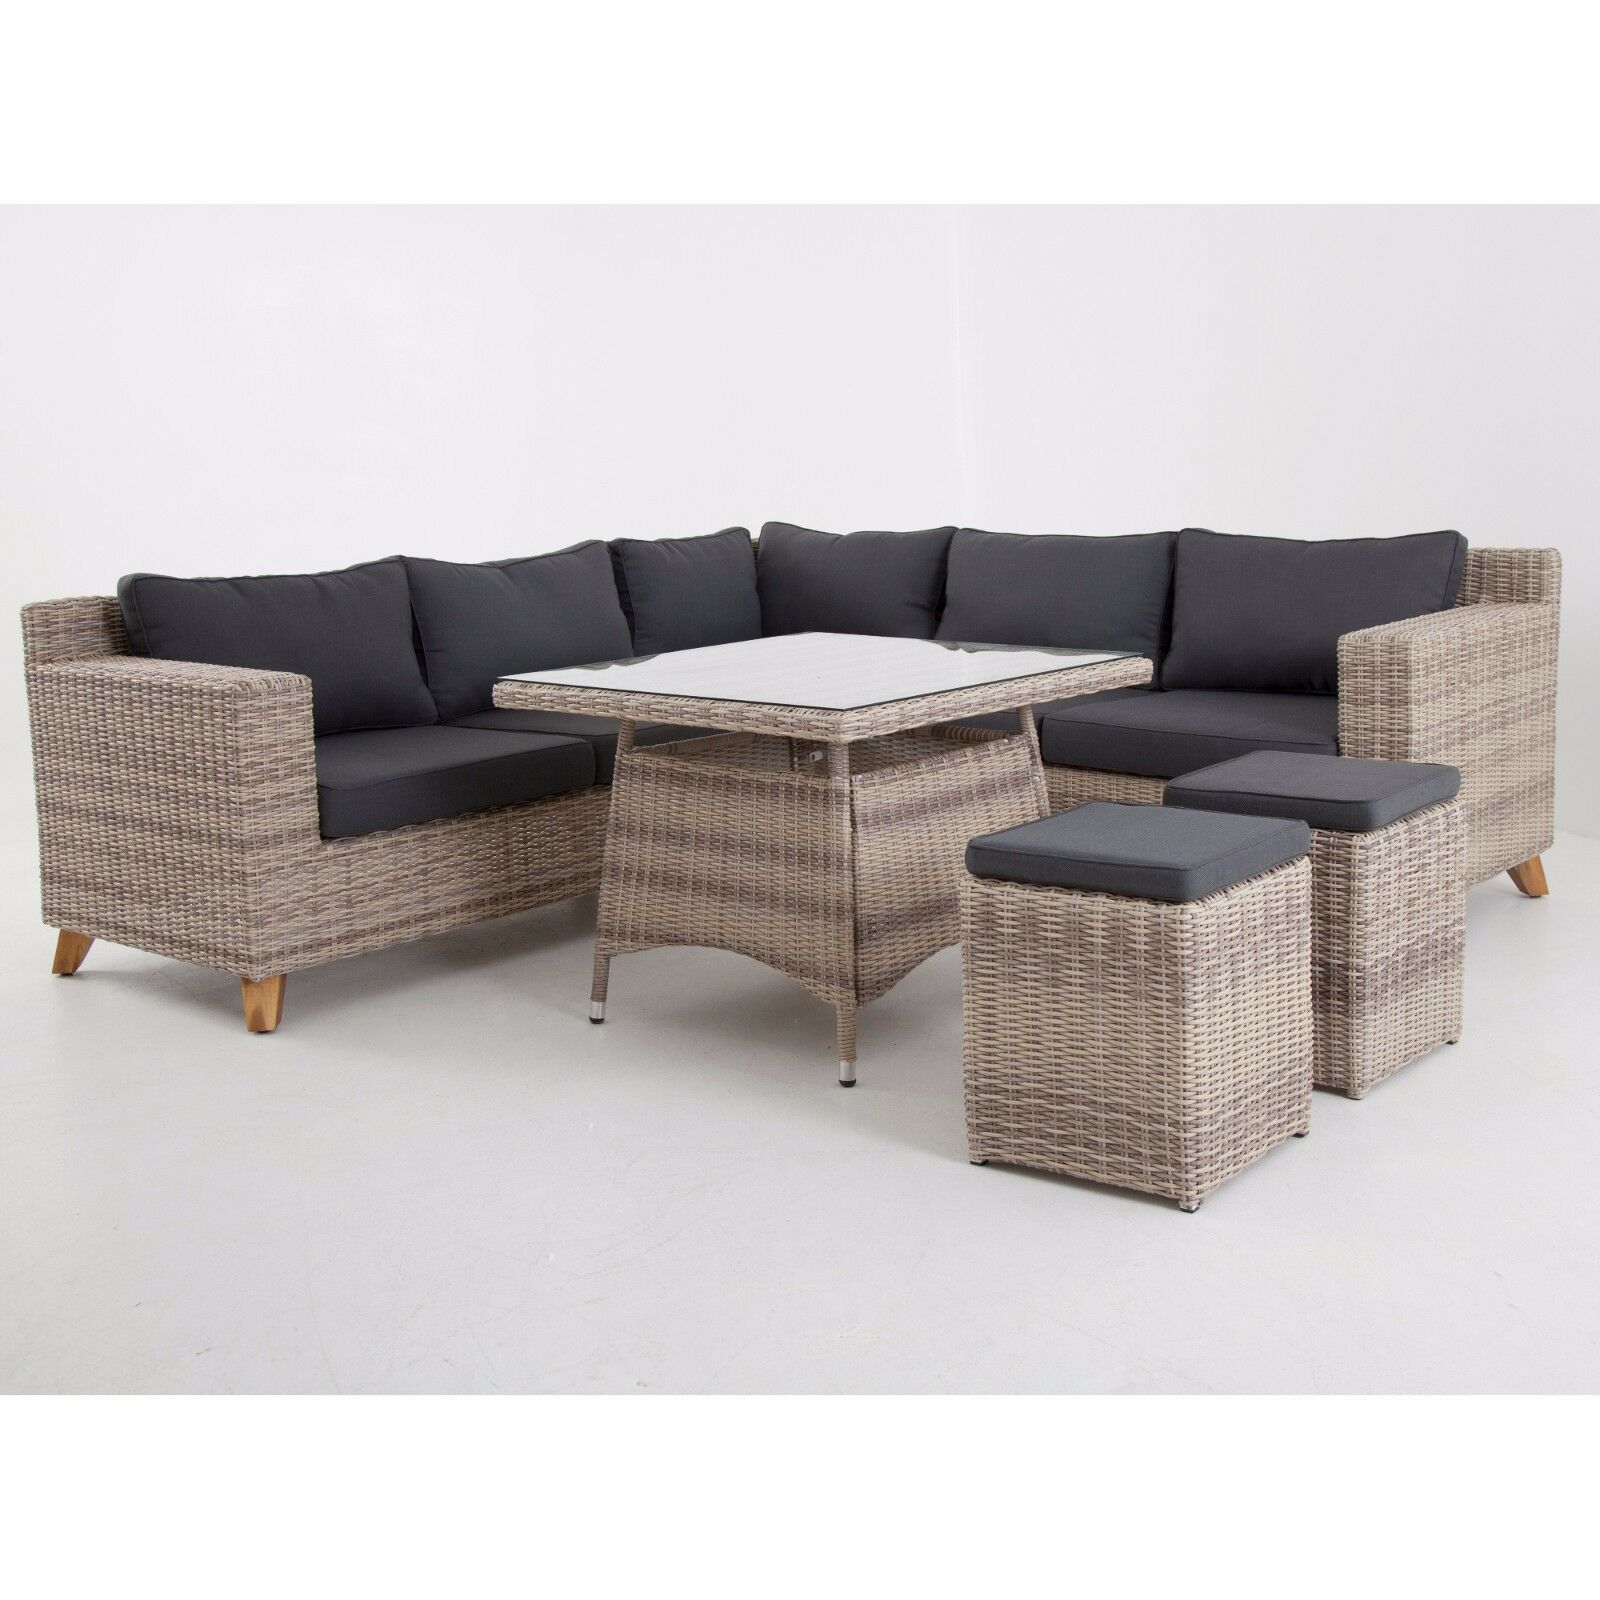 speisegruppe grau braun polyrattan aluminium tischgruppe sitzgruppe poly rattan eur 729 95. Black Bedroom Furniture Sets. Home Design Ideas